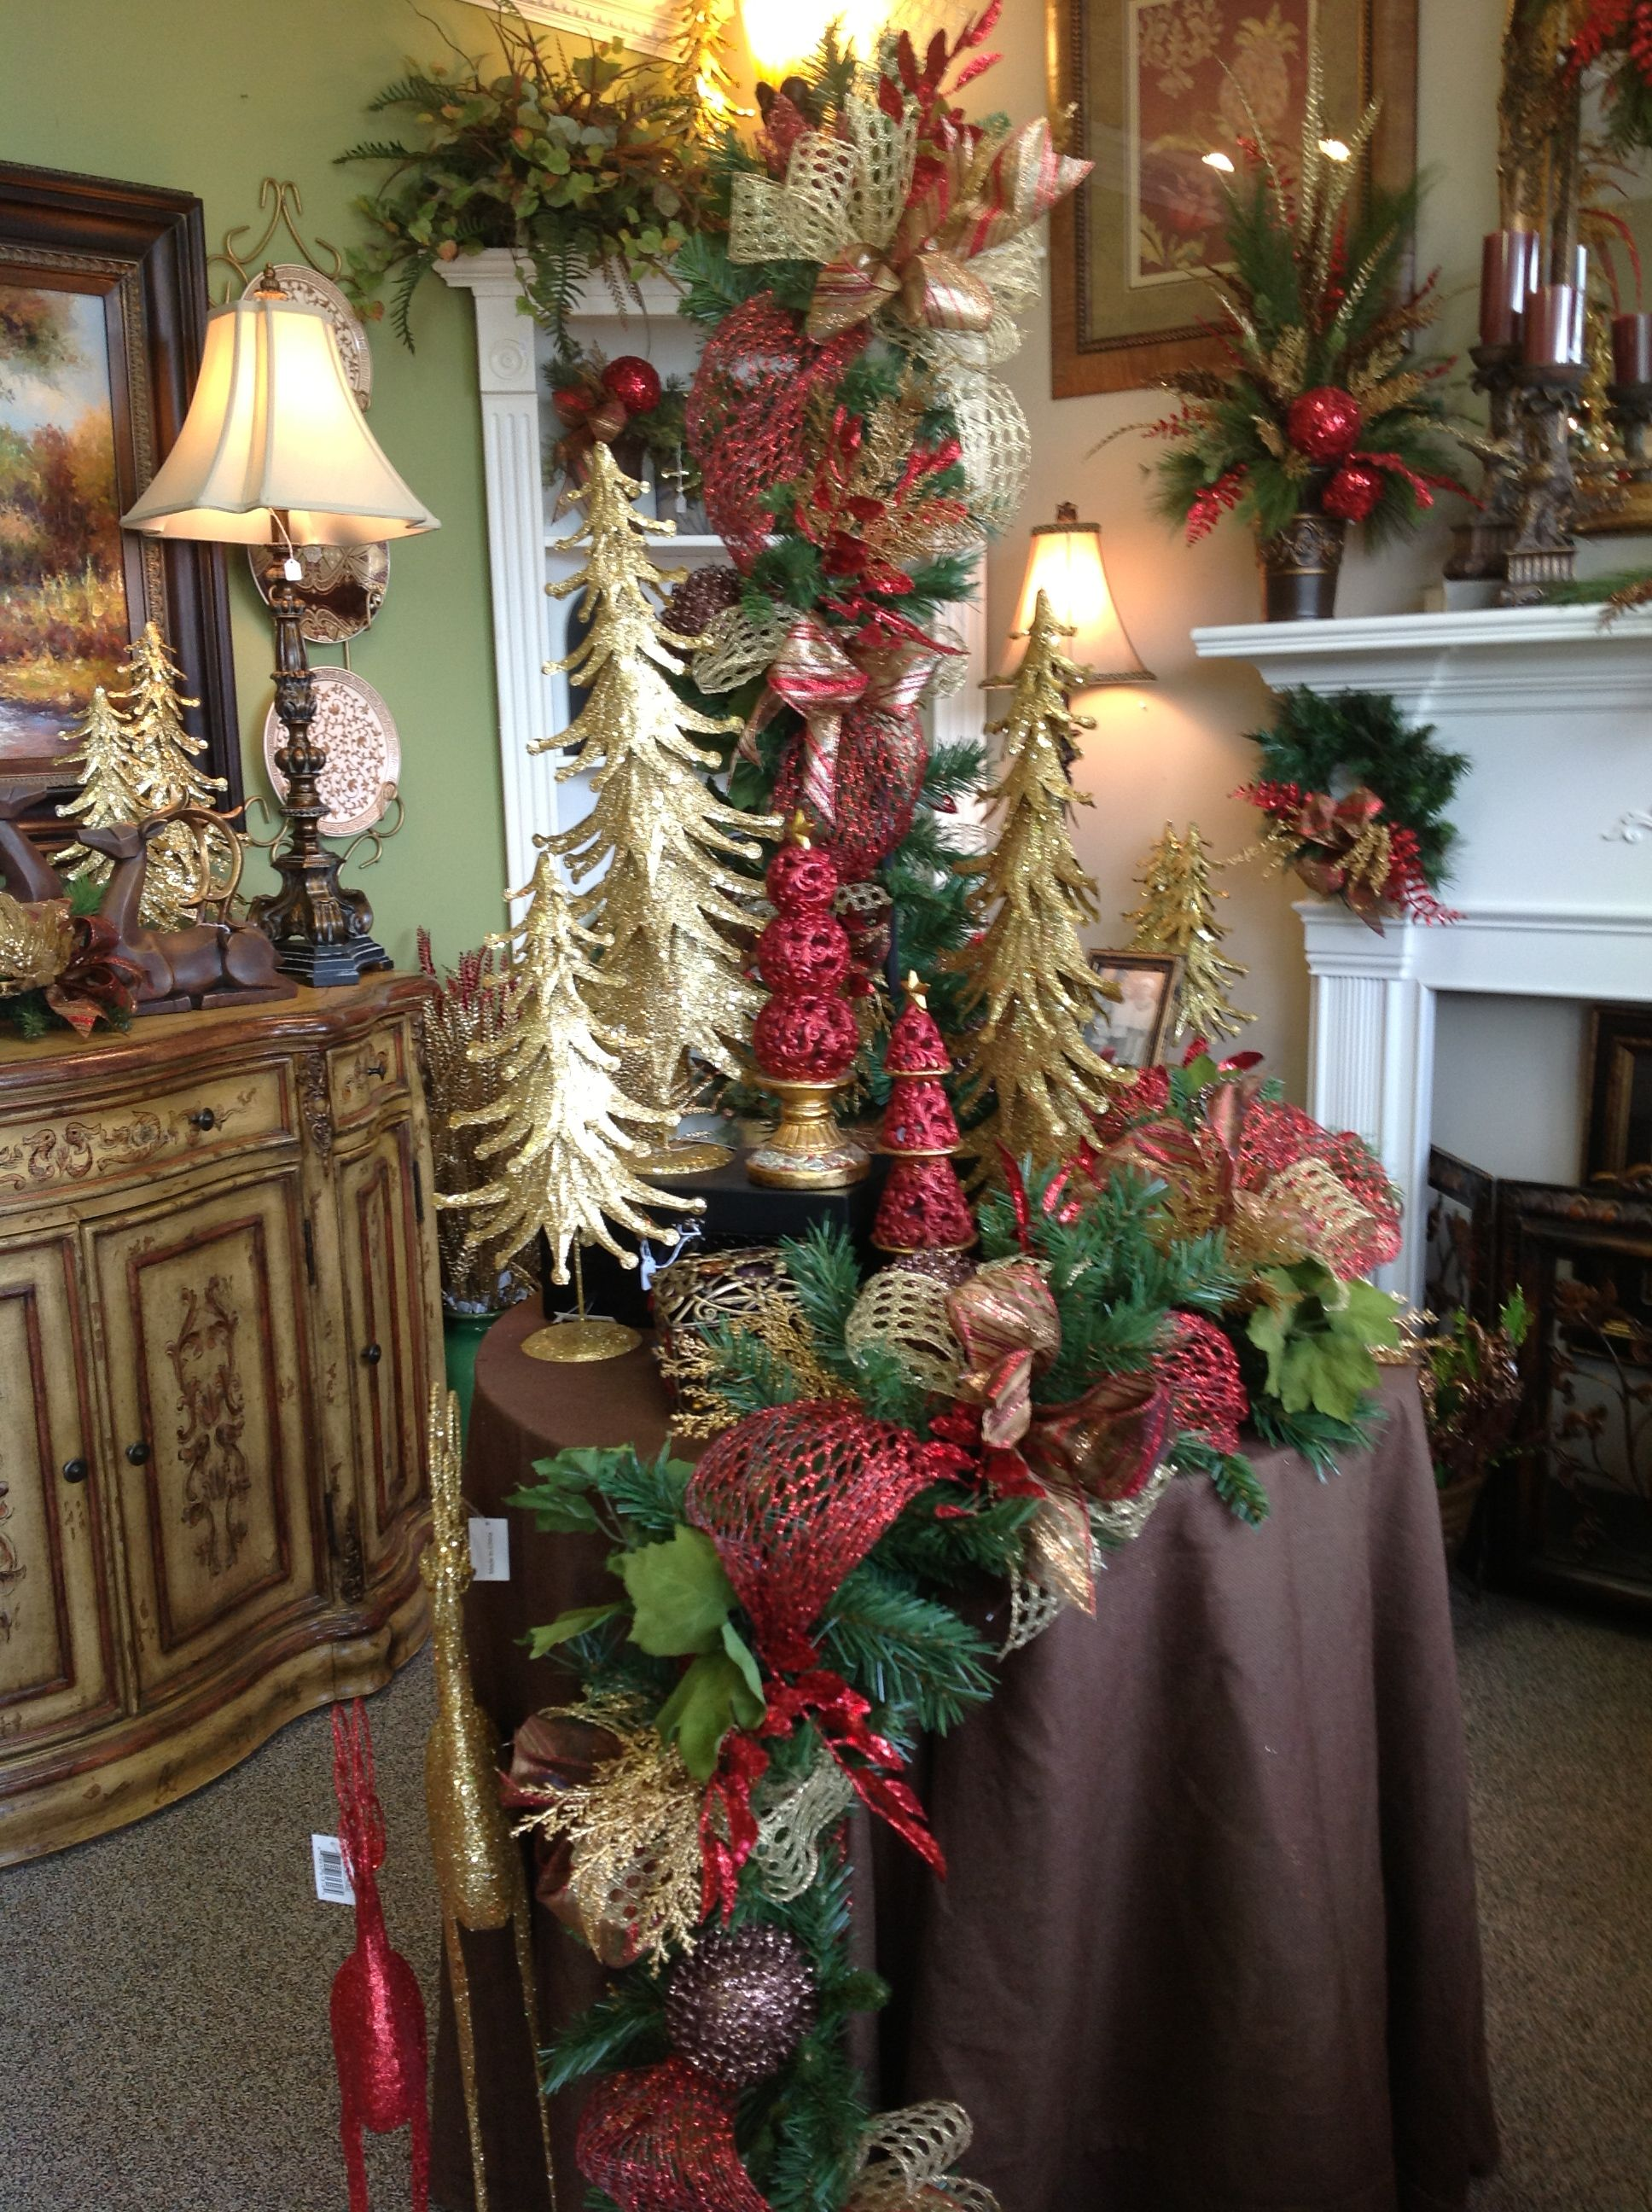 Garland in the elegant christmas room i love this business i haven